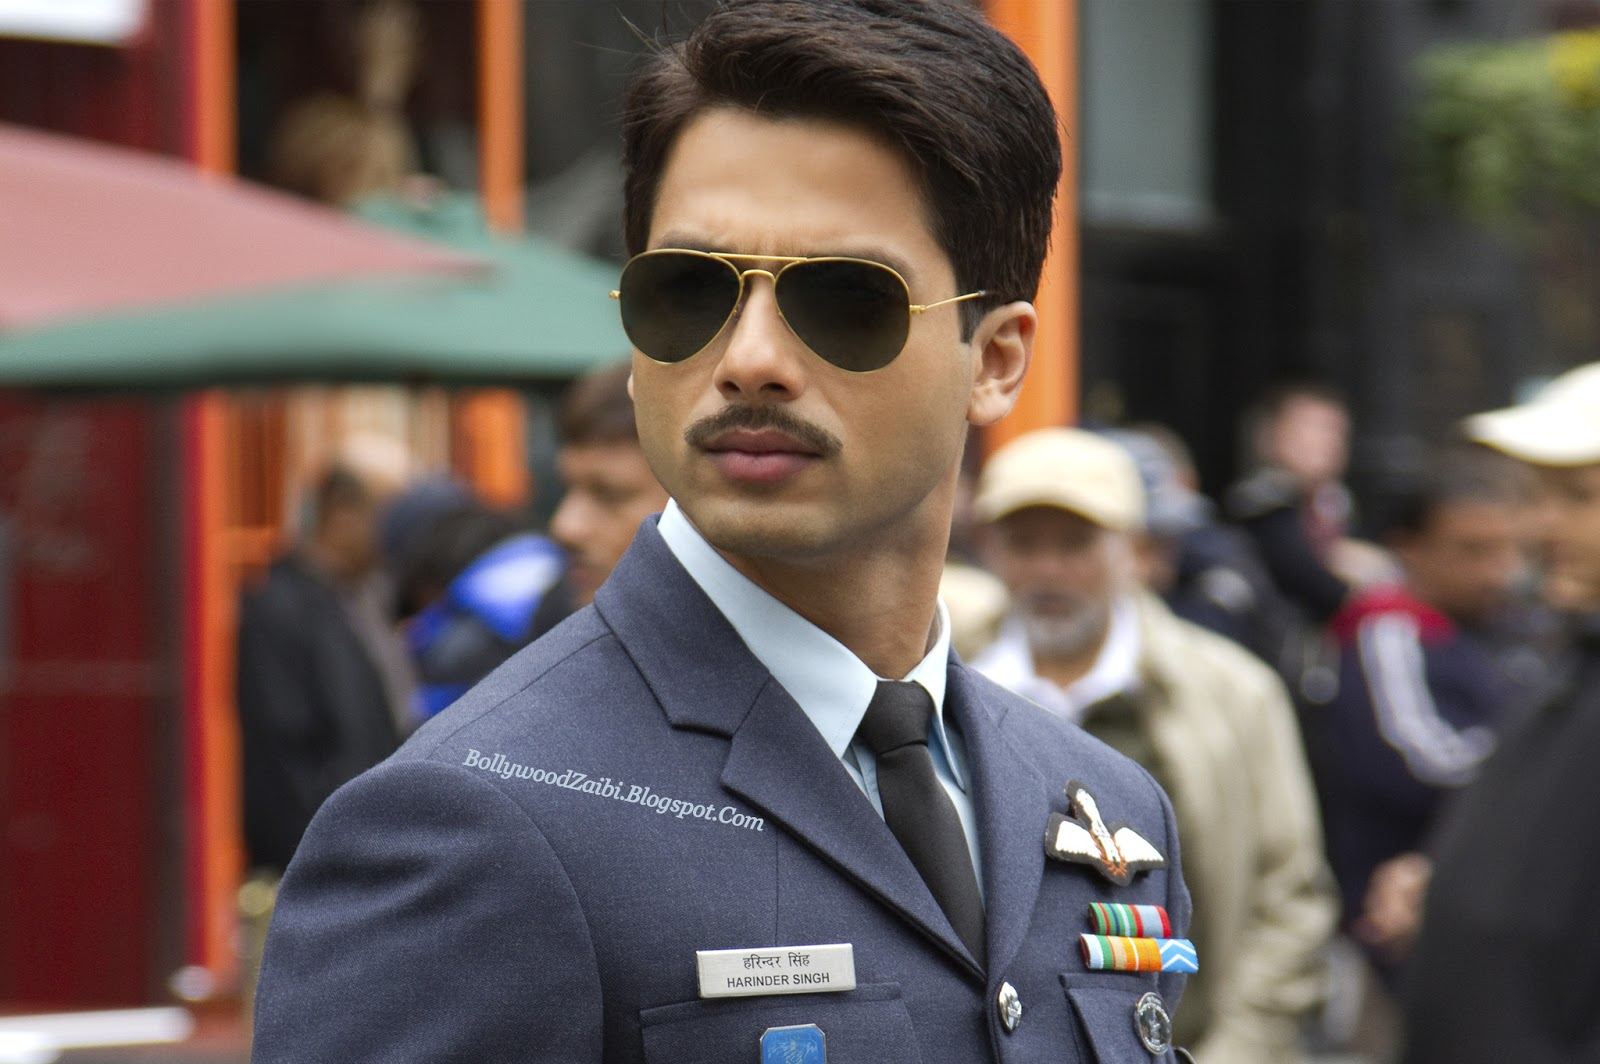 Shahid Kapoor In Movies Mausam HD Wallpaper | Bollywood Zaibi